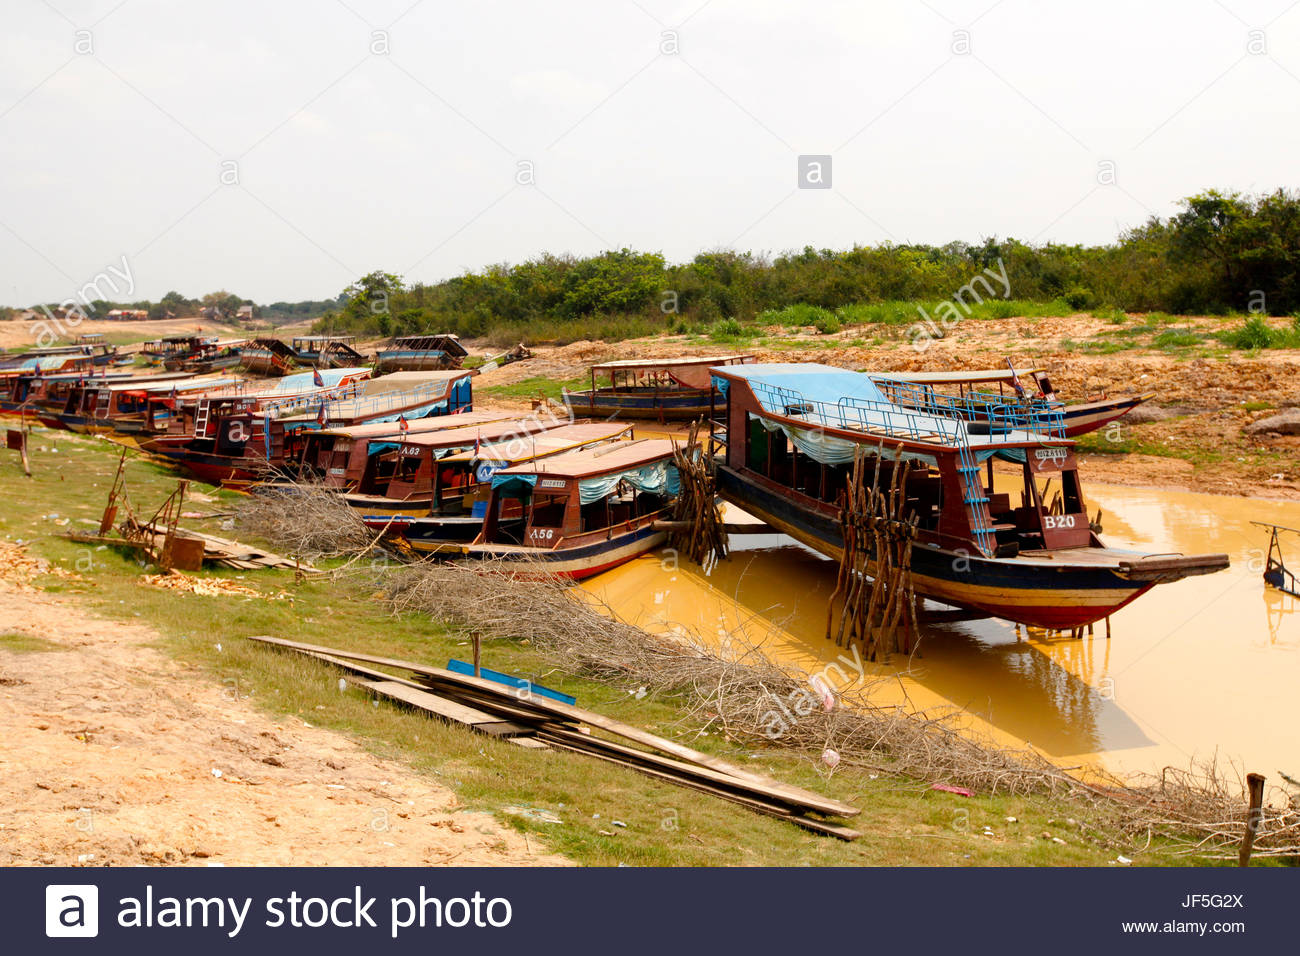 Boats on Tonle Sap during the dry season. - Stock Image